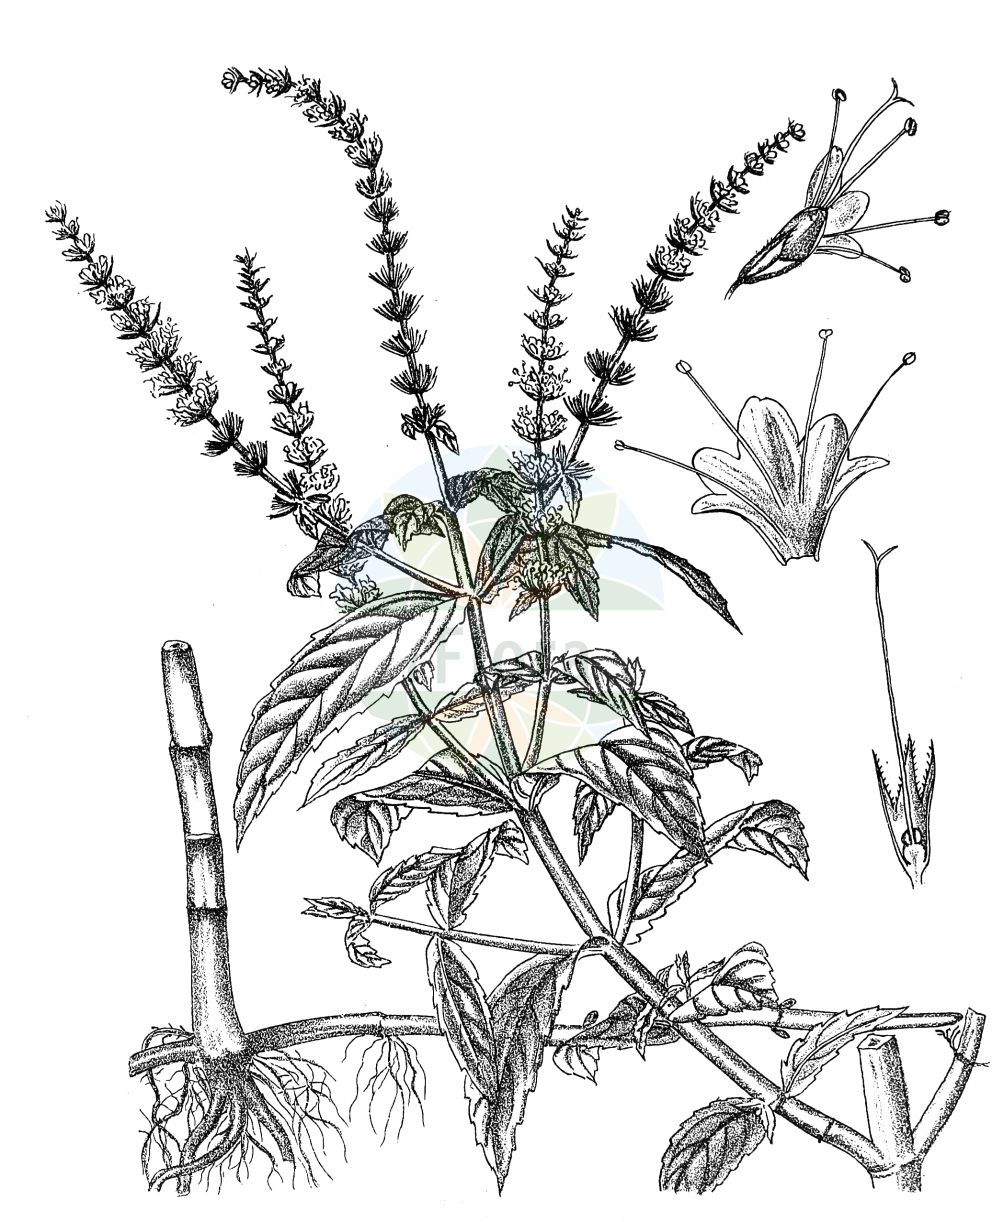 Historische Abbildung von Mentha spicata (Ähren-Minze - Spear Mint). Das Bild zeigt Blatt, Bluete, Frucht und Same. ---- Historical Drawing of Mentha spicata (Ähren-Minze - Spear Mint).The image is showing leaf, flower, fruit and seed.(Mentha spicata,Ähren-Minze,Spear Mint,Mentha spicata,Ähren-Minze,Spear Mint,Round-leaved Mint,Mentha,Minze,Mint,Lamiaceae,Lippenbluetengewaechse,Lippenbluetler,Nettle family,Blatt,Bluete,Frucht,Same,leaf,flower,fruit,seed,Kirtikar & Basu (1918))